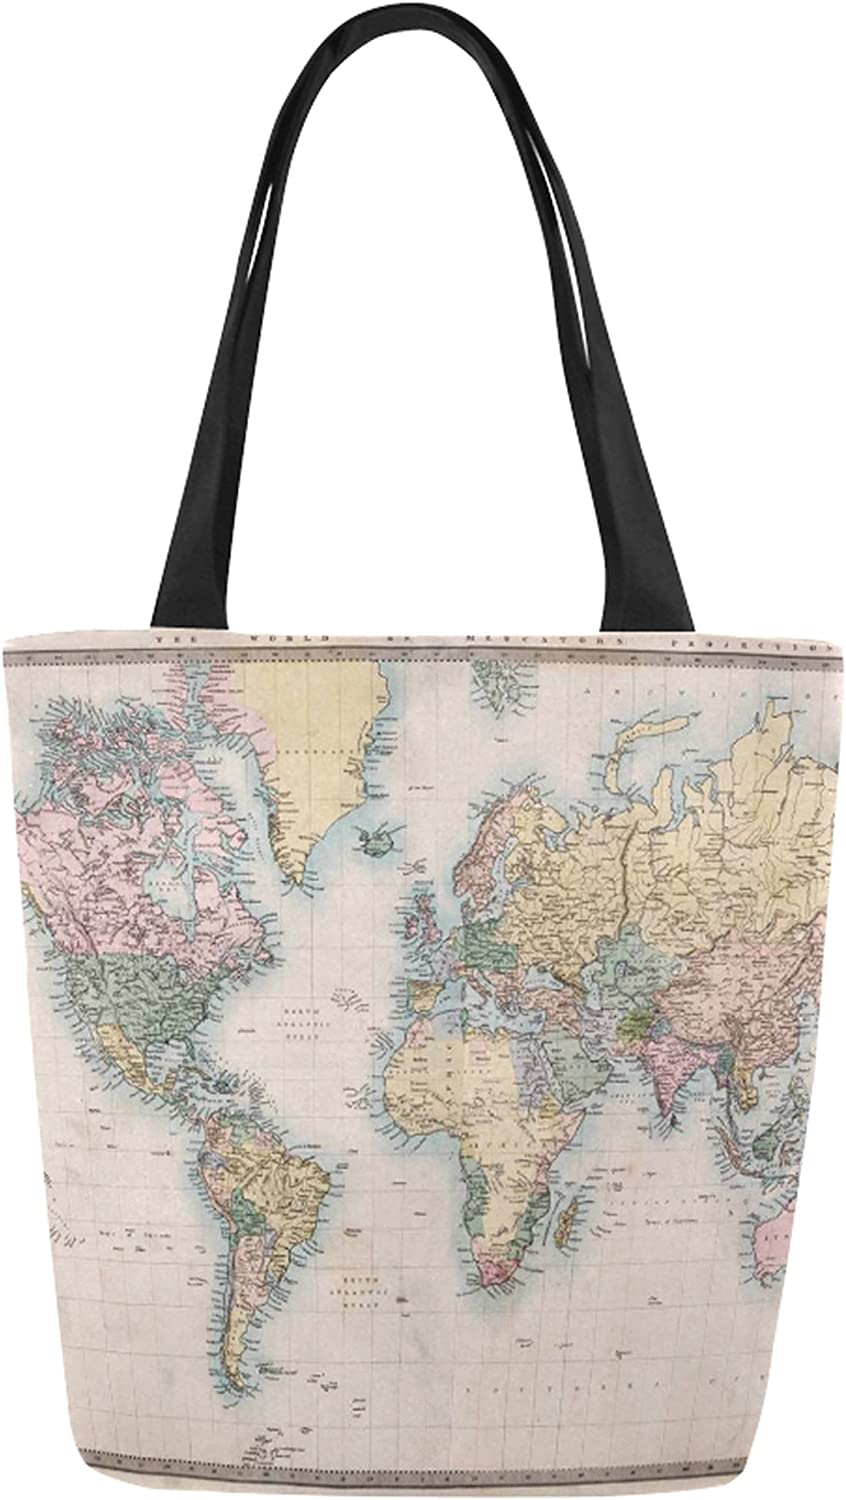 InterestPrint Vintage Retro World Map Canvas Tote Bag Shoulder Handbag for Women Girls